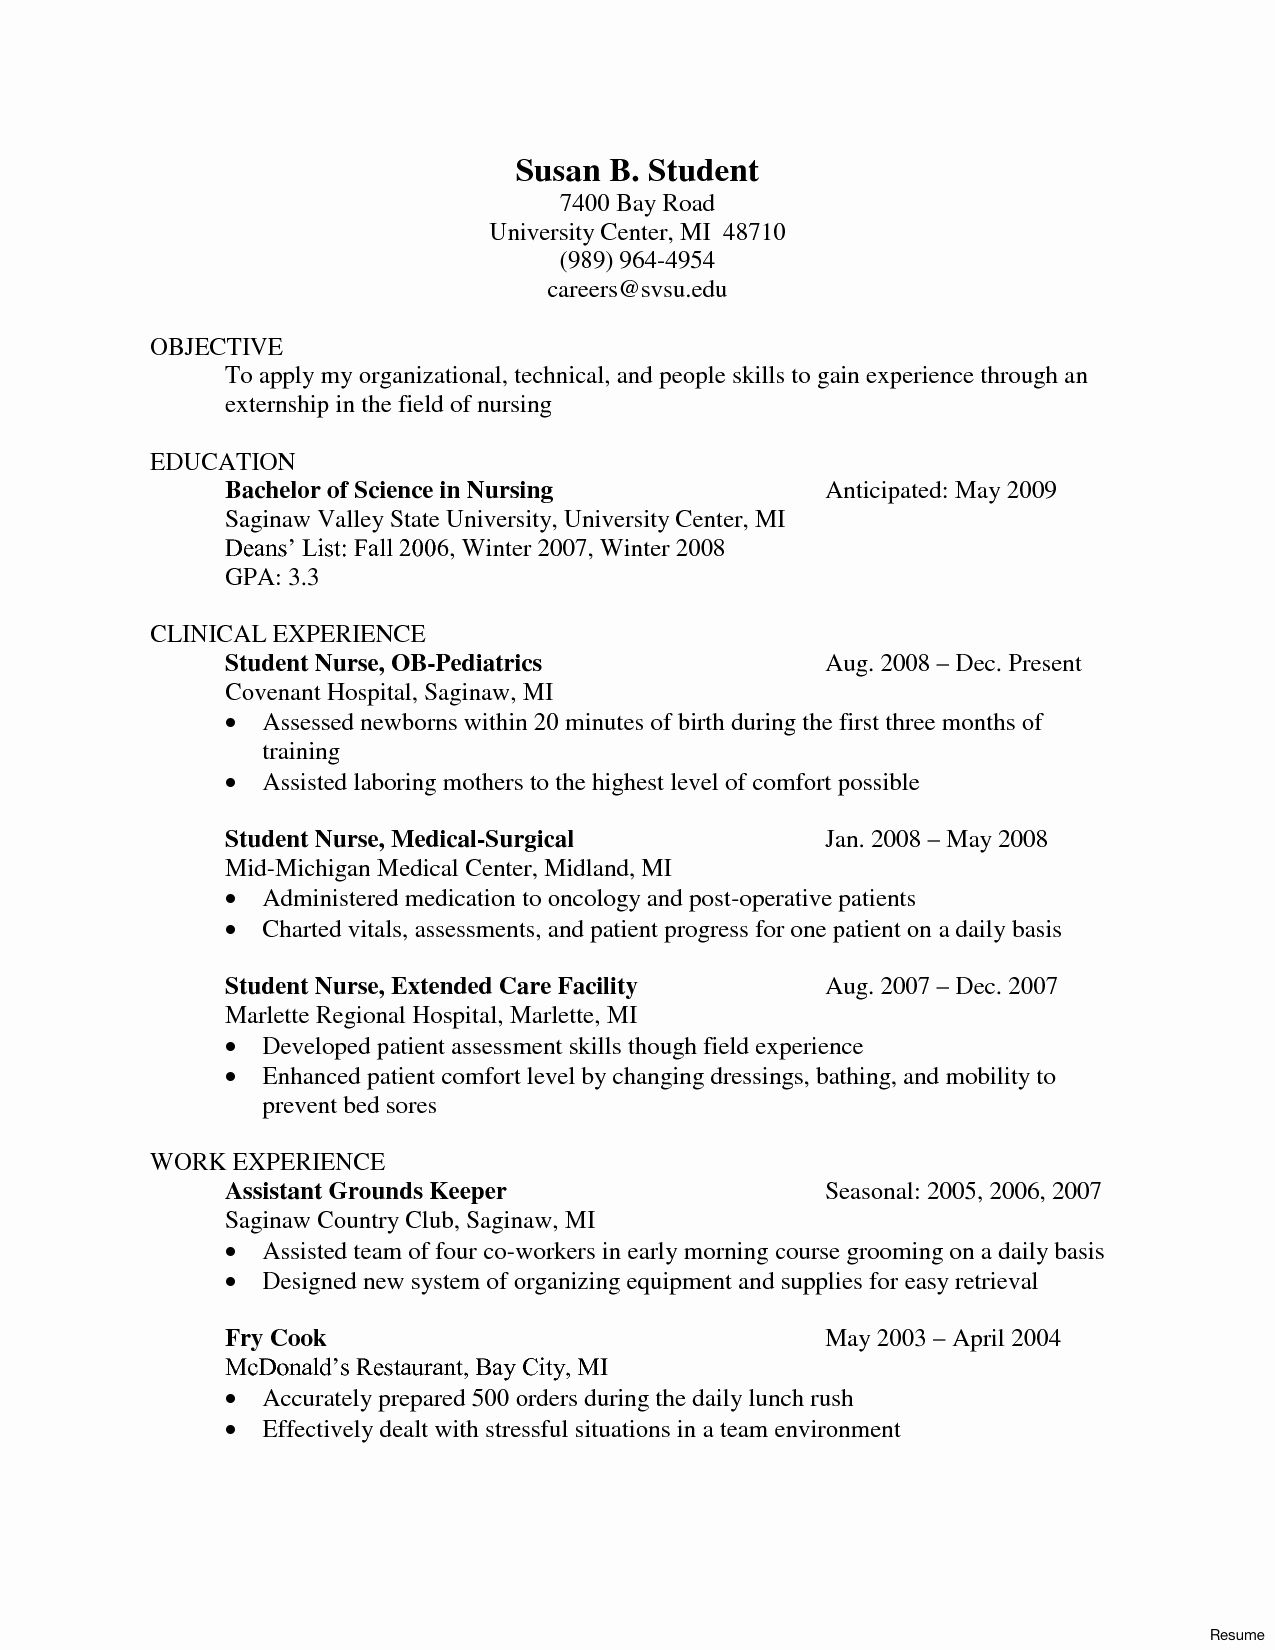 27 Nursing Student Cover Letter In 2020 Student Nurse Resume